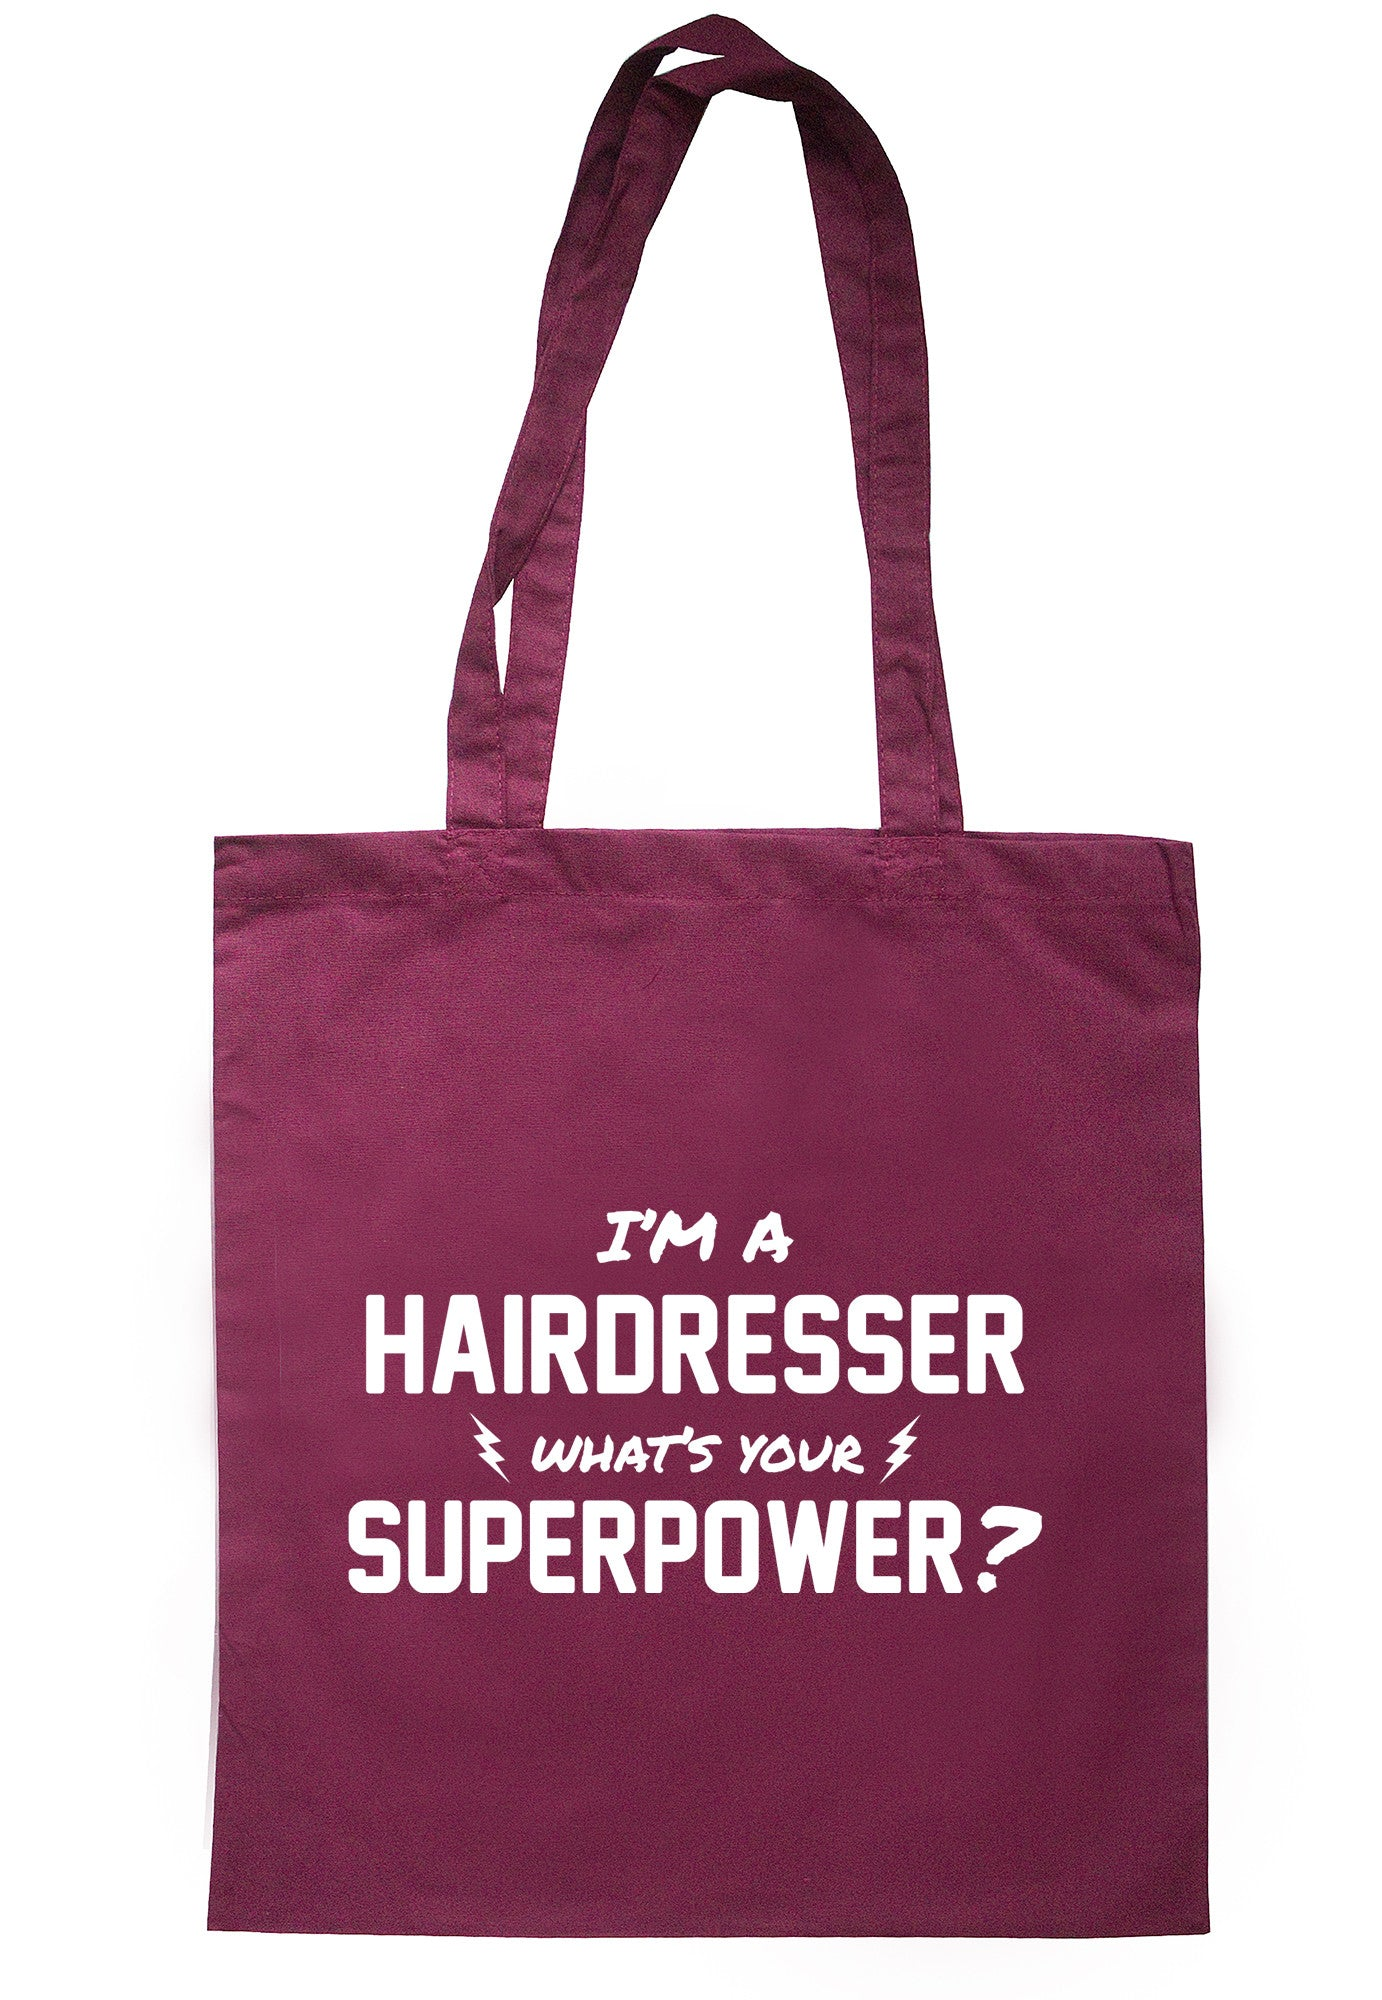 I'm A Hairdresser What's Your Superpower? Tote Bag TB0521 - Illustrated Identity Ltd.